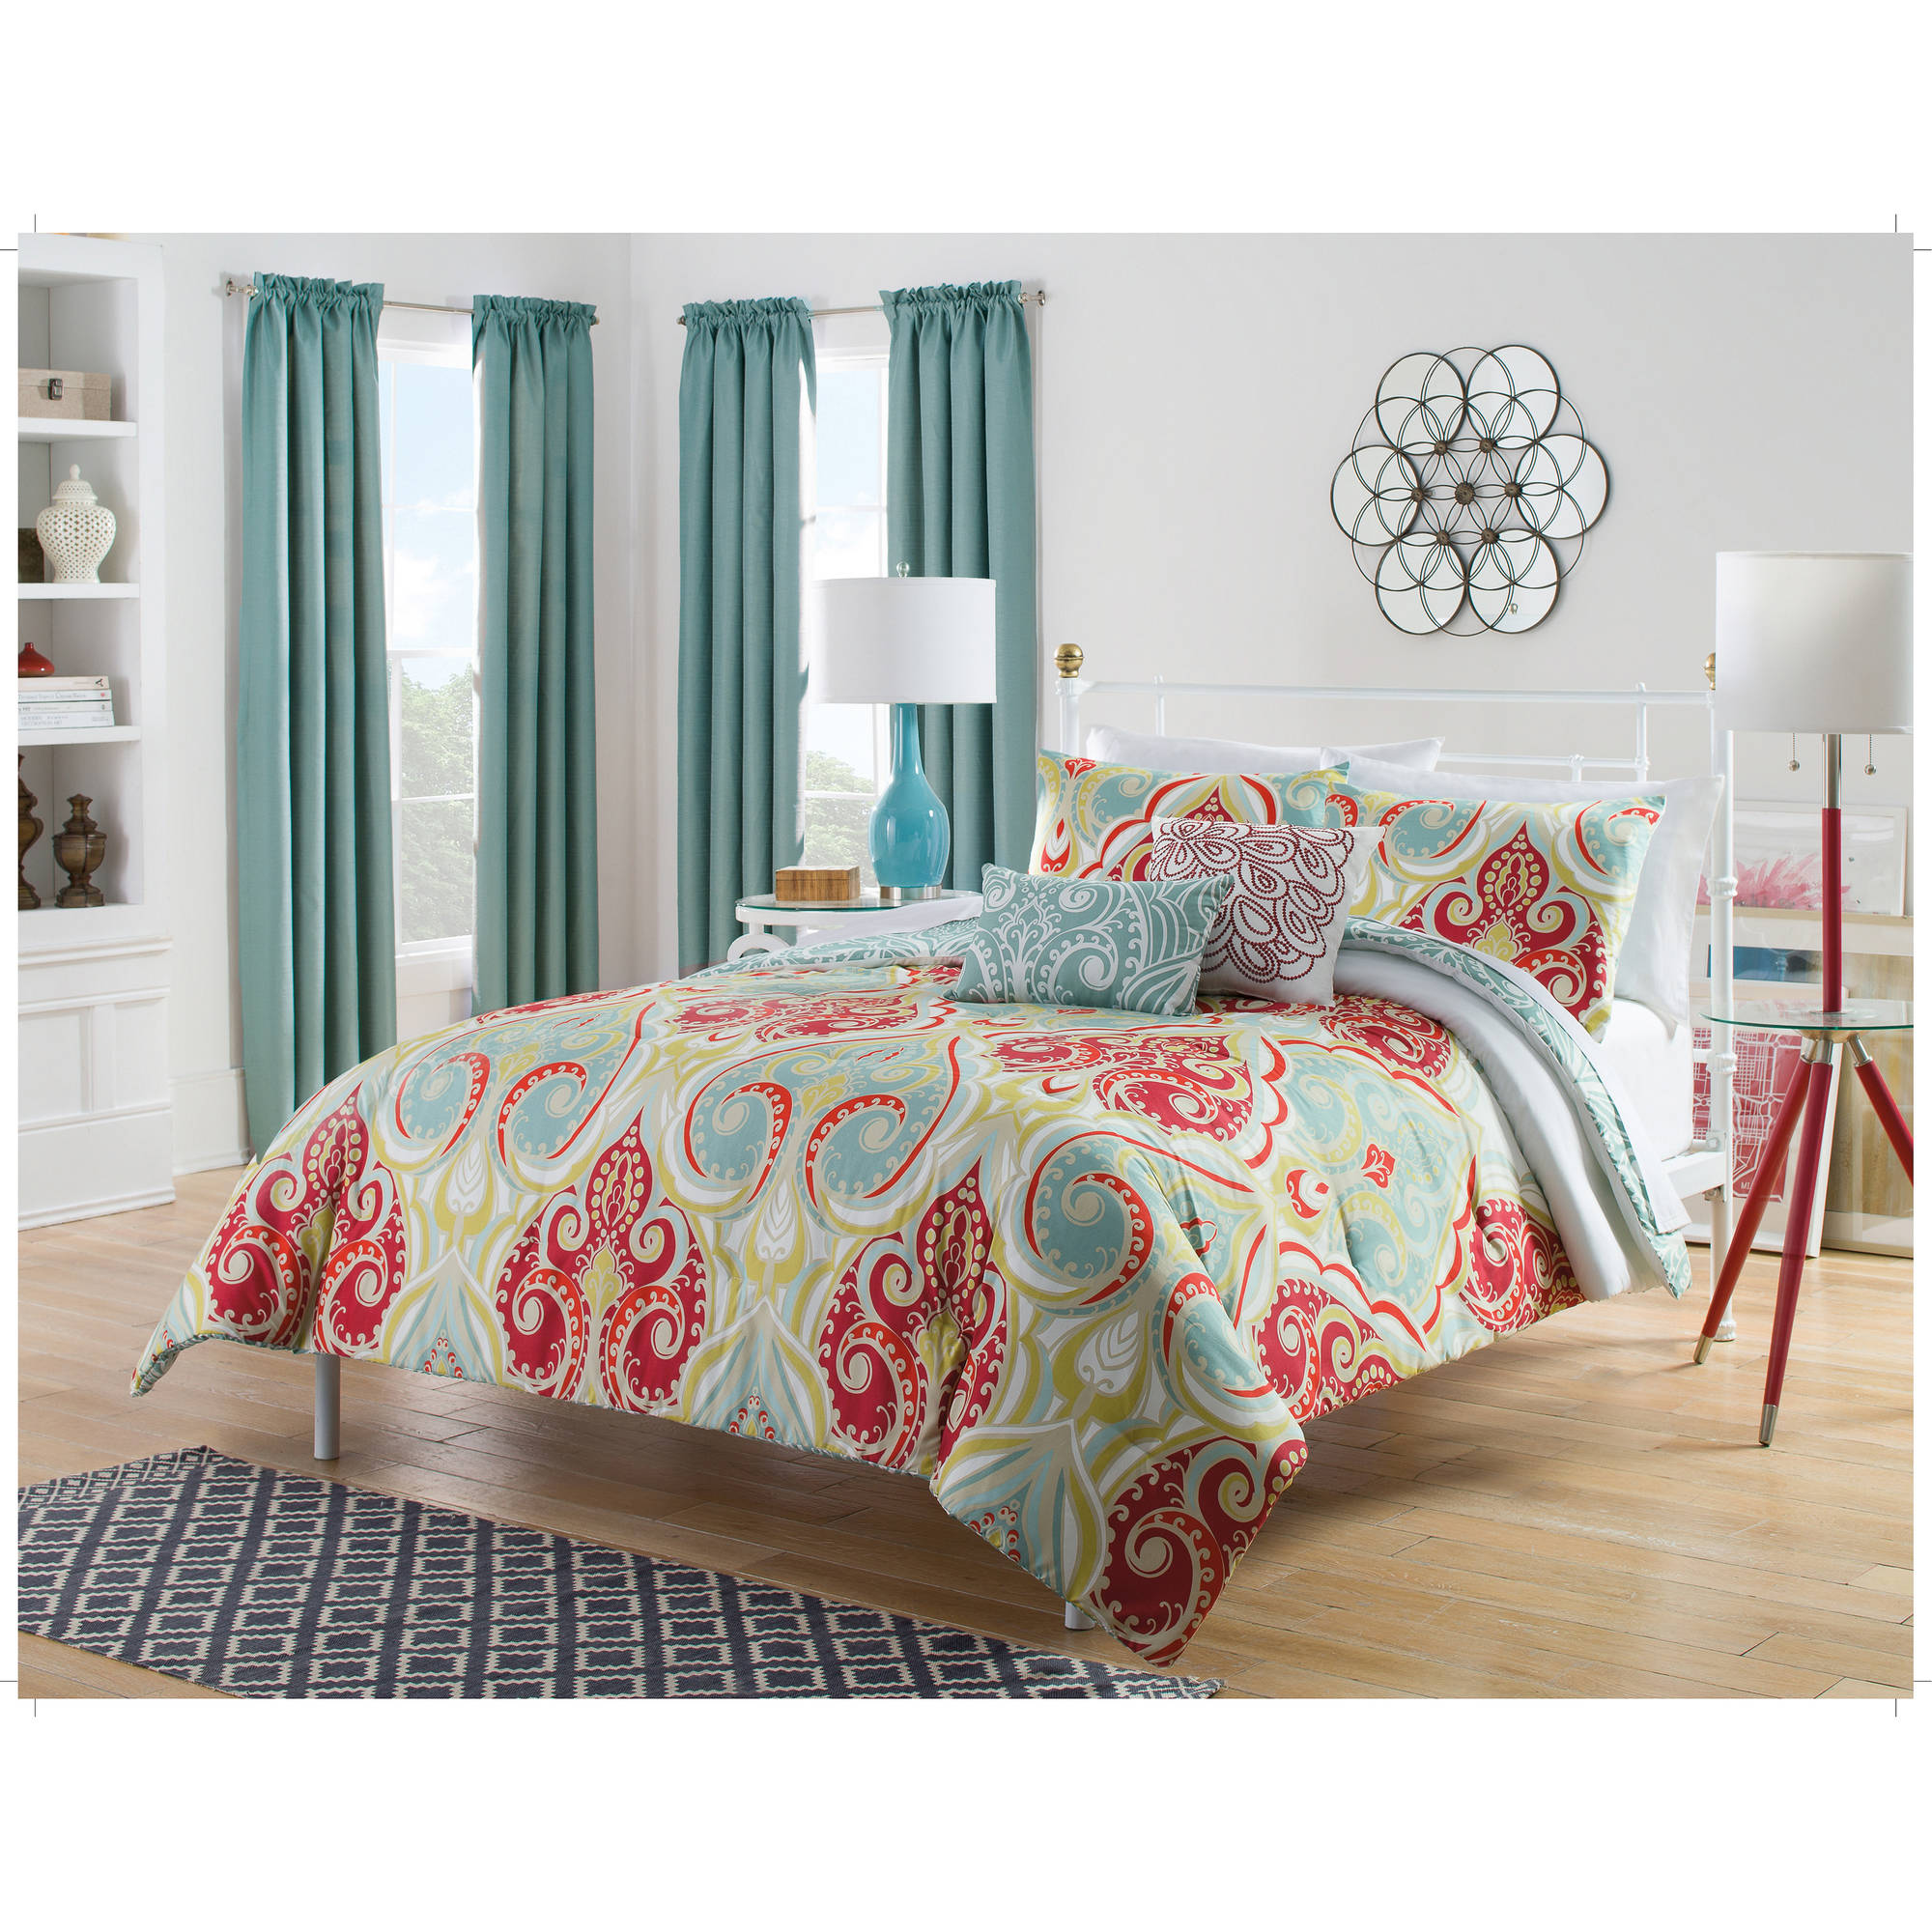 Harmony At Home Festival 5-Piece Reversible Bedding Comforter Set